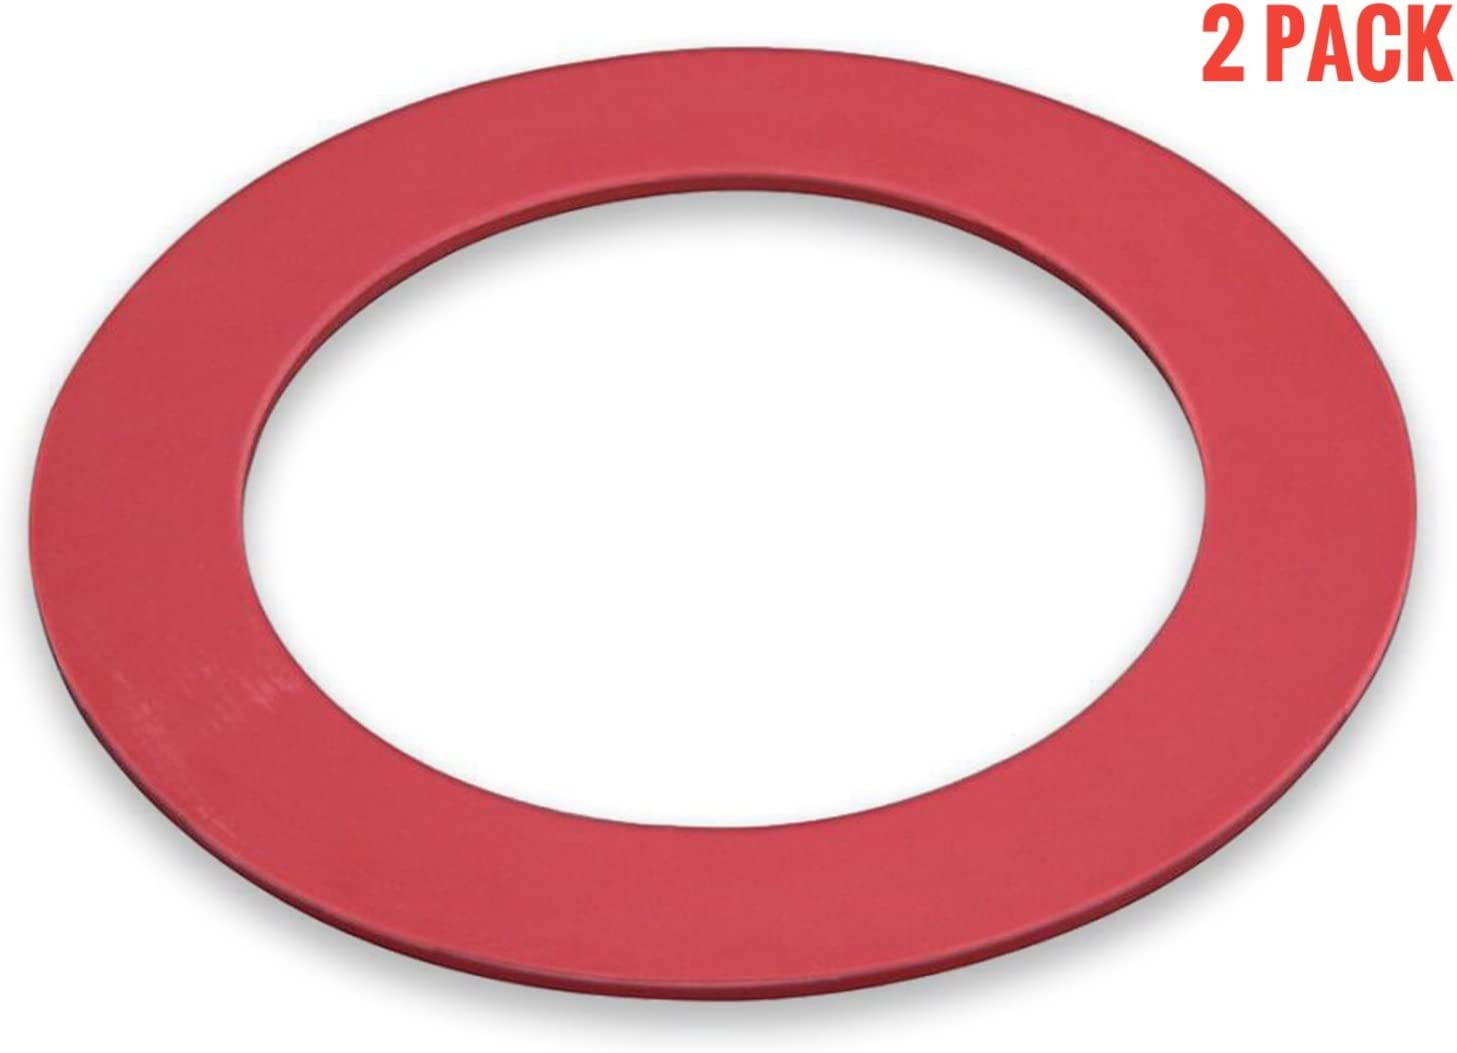 Flush Valve Rubber Seal Gasket Replacement for Mansfield 210 & 211, 2 Pack (Mansfield Flush Valve Seal)